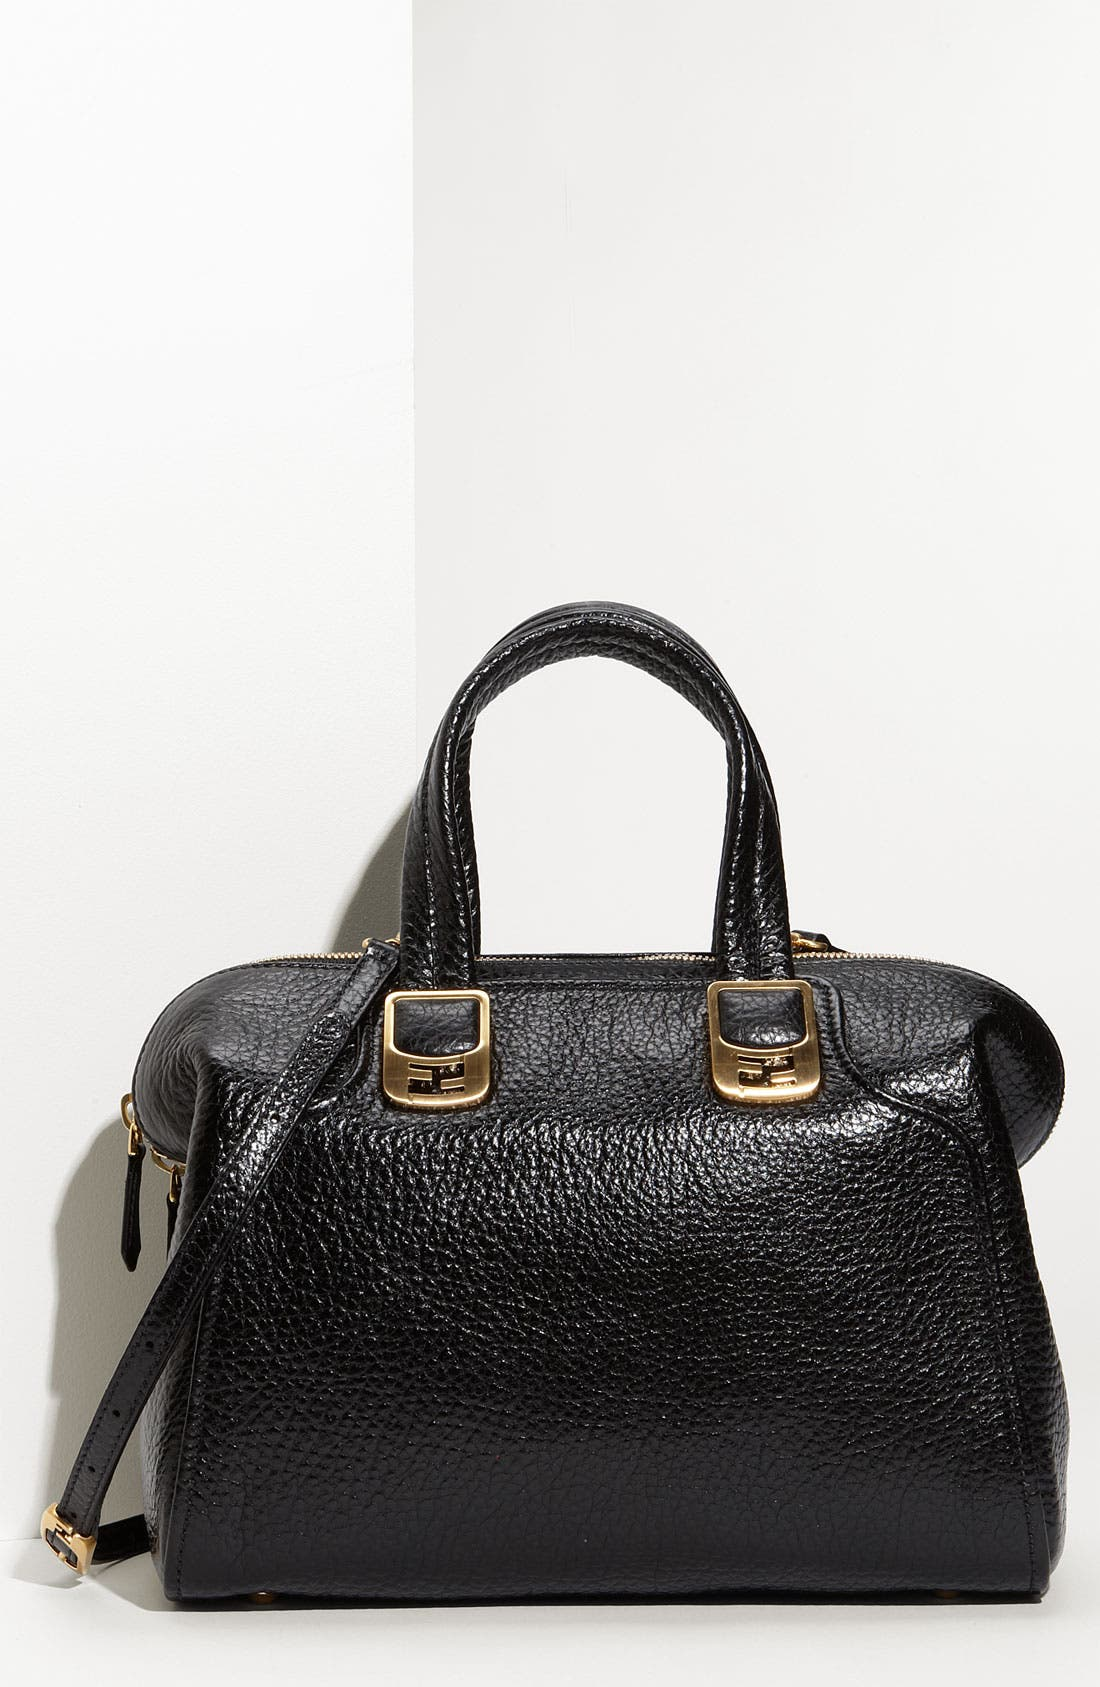 Alternate Image 1 Selected - Fendi 'Chameleon - Small' Leather Tote